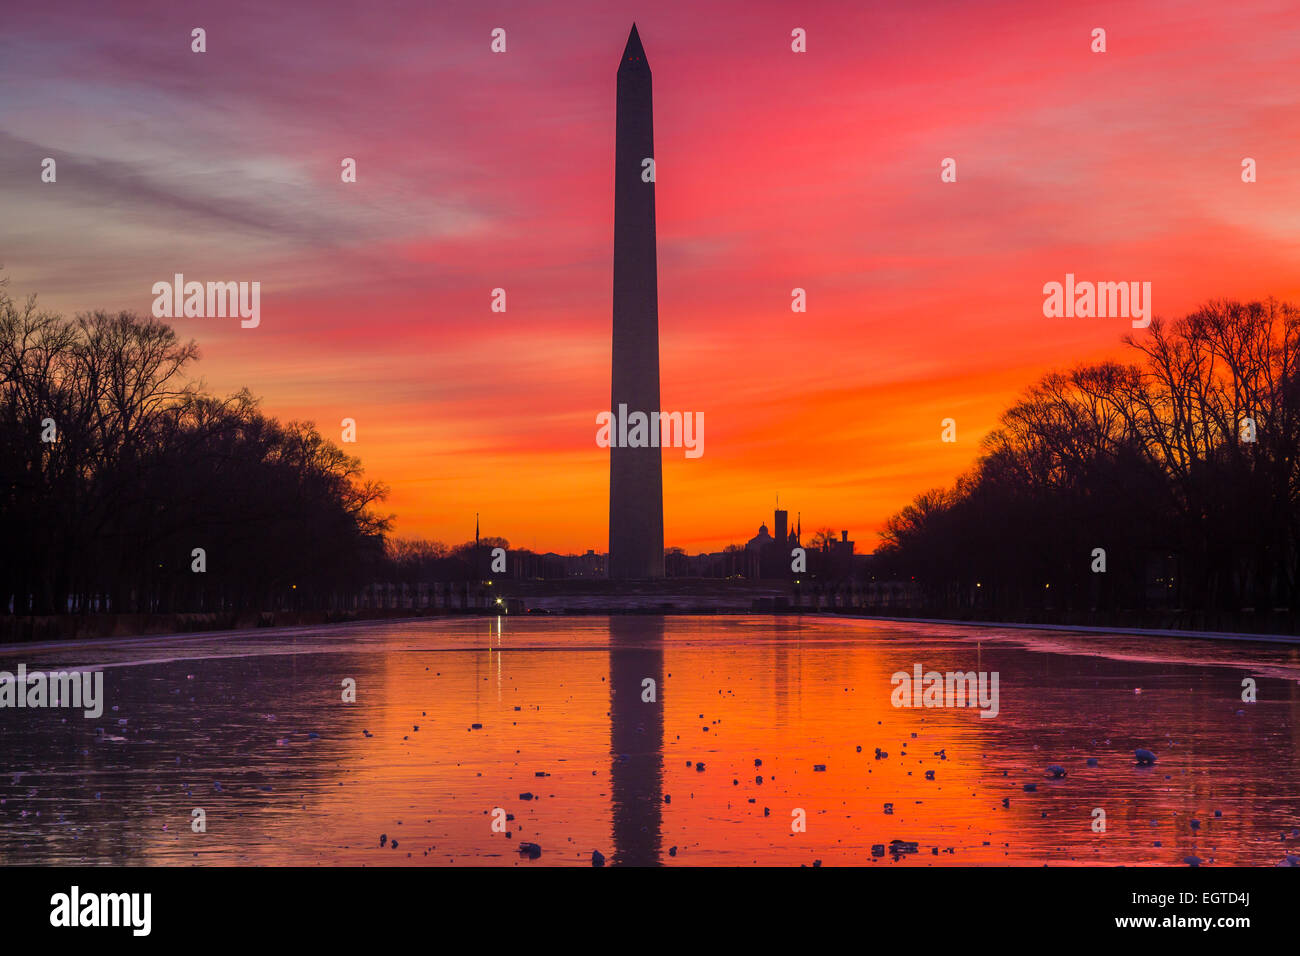 The Washington Monument is an obelisk near the west end of the National Mall in Washington, D.C. - Stock Image